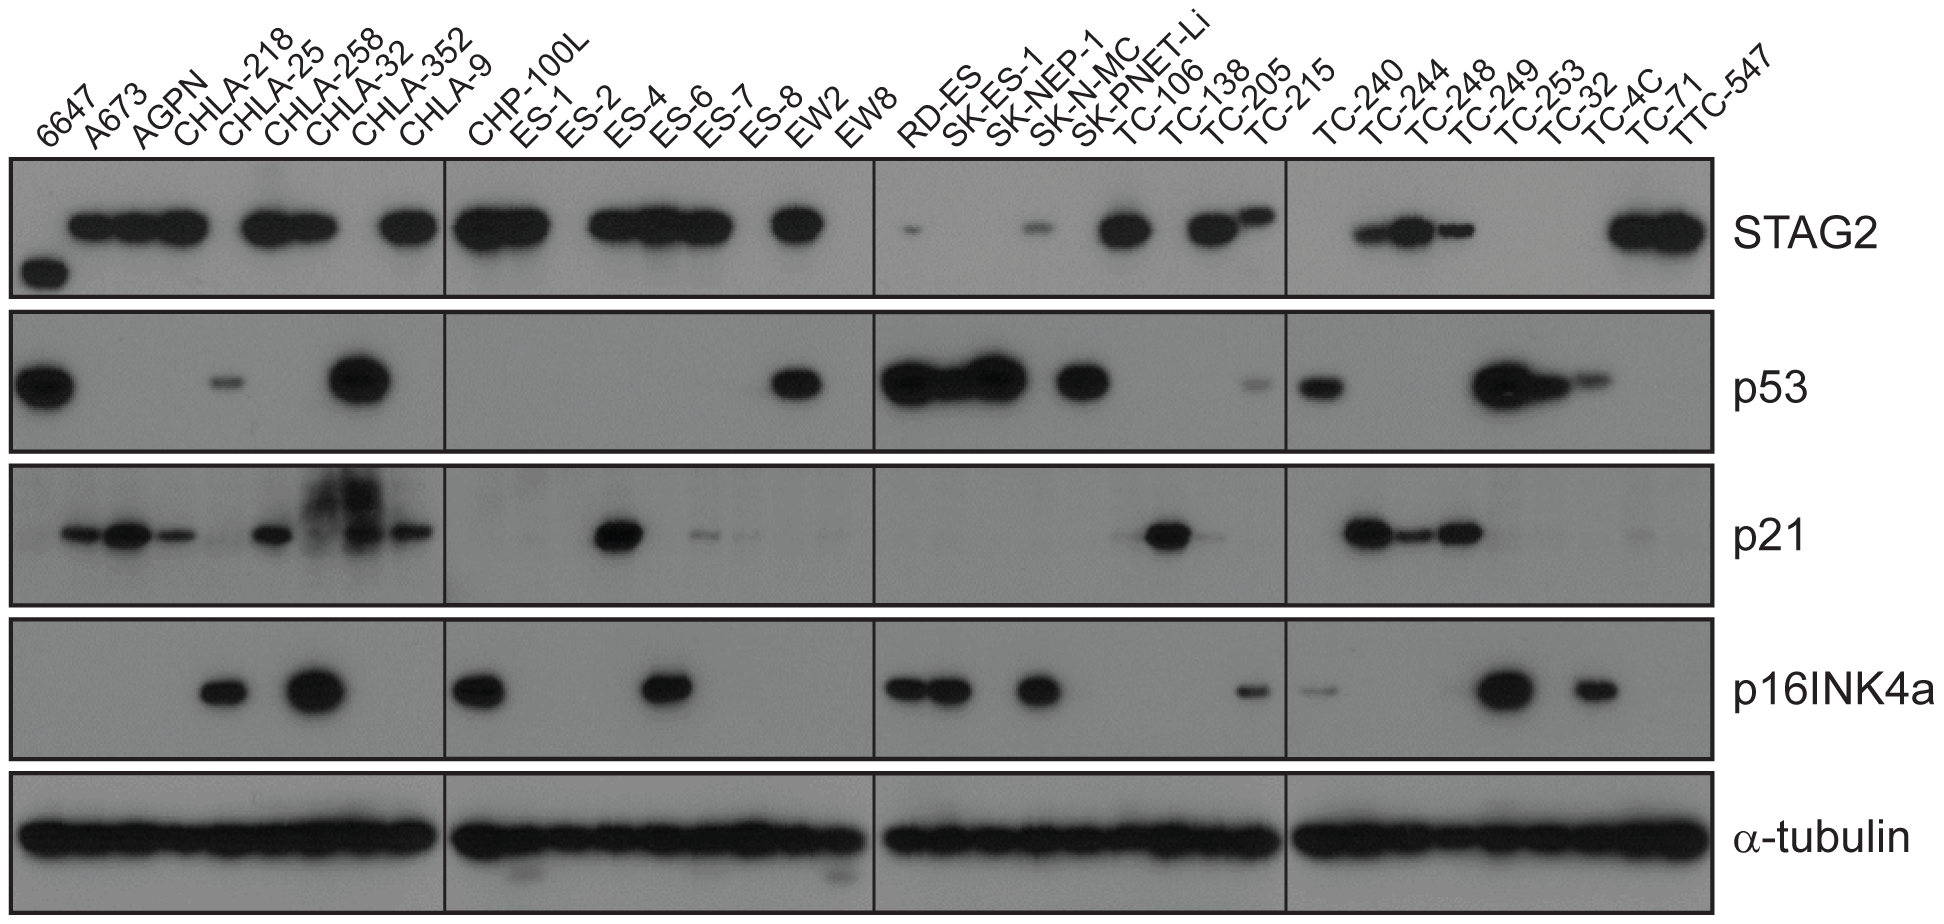 Western blots analysis of STAG2, TP53, p21<sup>WAF1/CIP1</sup>, and p16<sup>INK4a</sup> on a panel of 36 unique EFT cell lines.